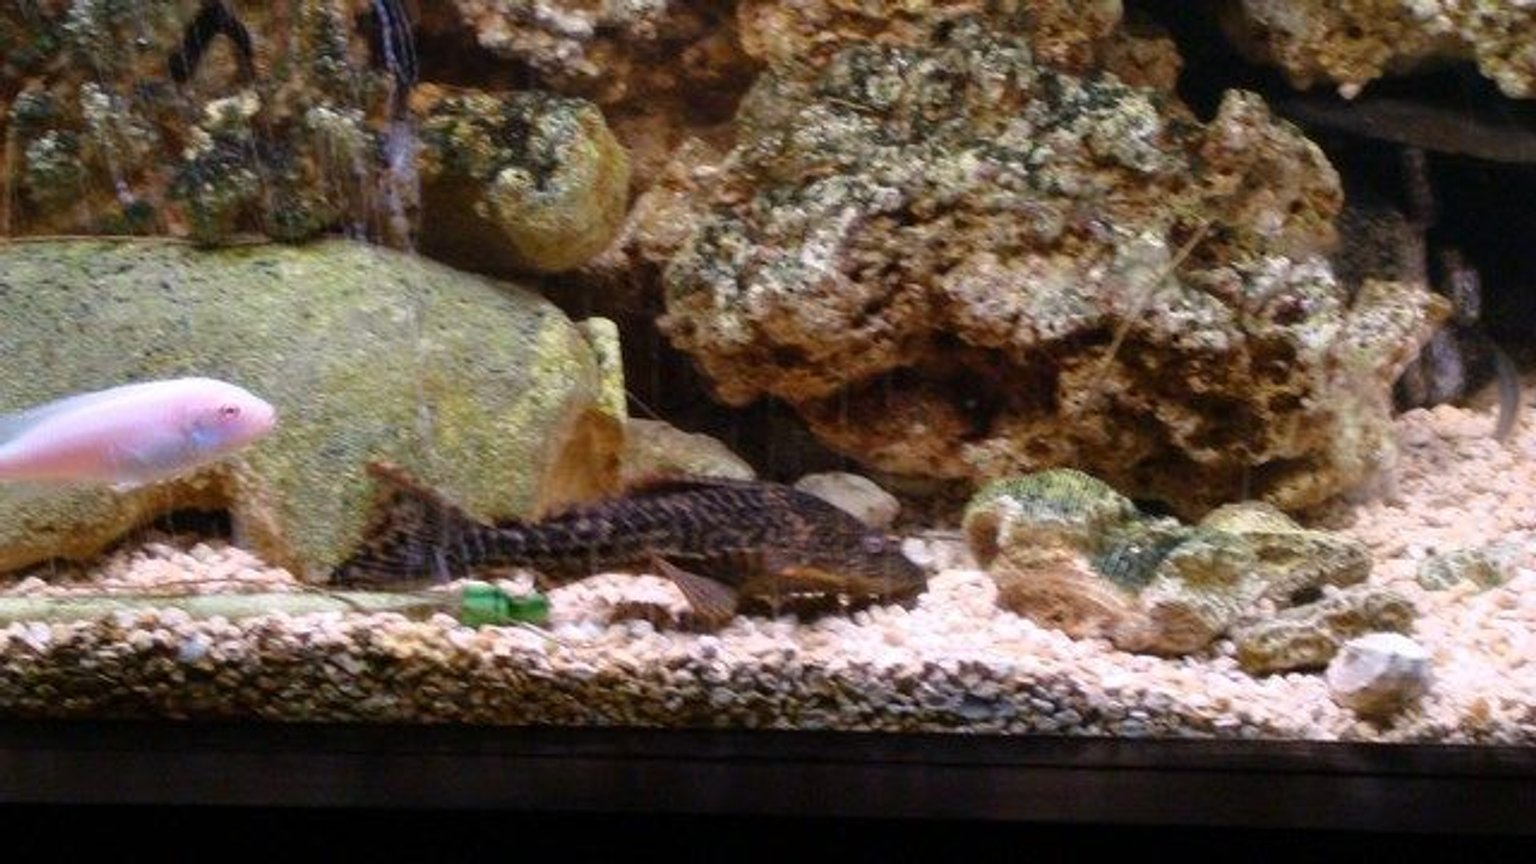 freshwater fish - hypostomus punctatus - trinidad pleco stocking in 75 gallons tank - he poOps 2 much